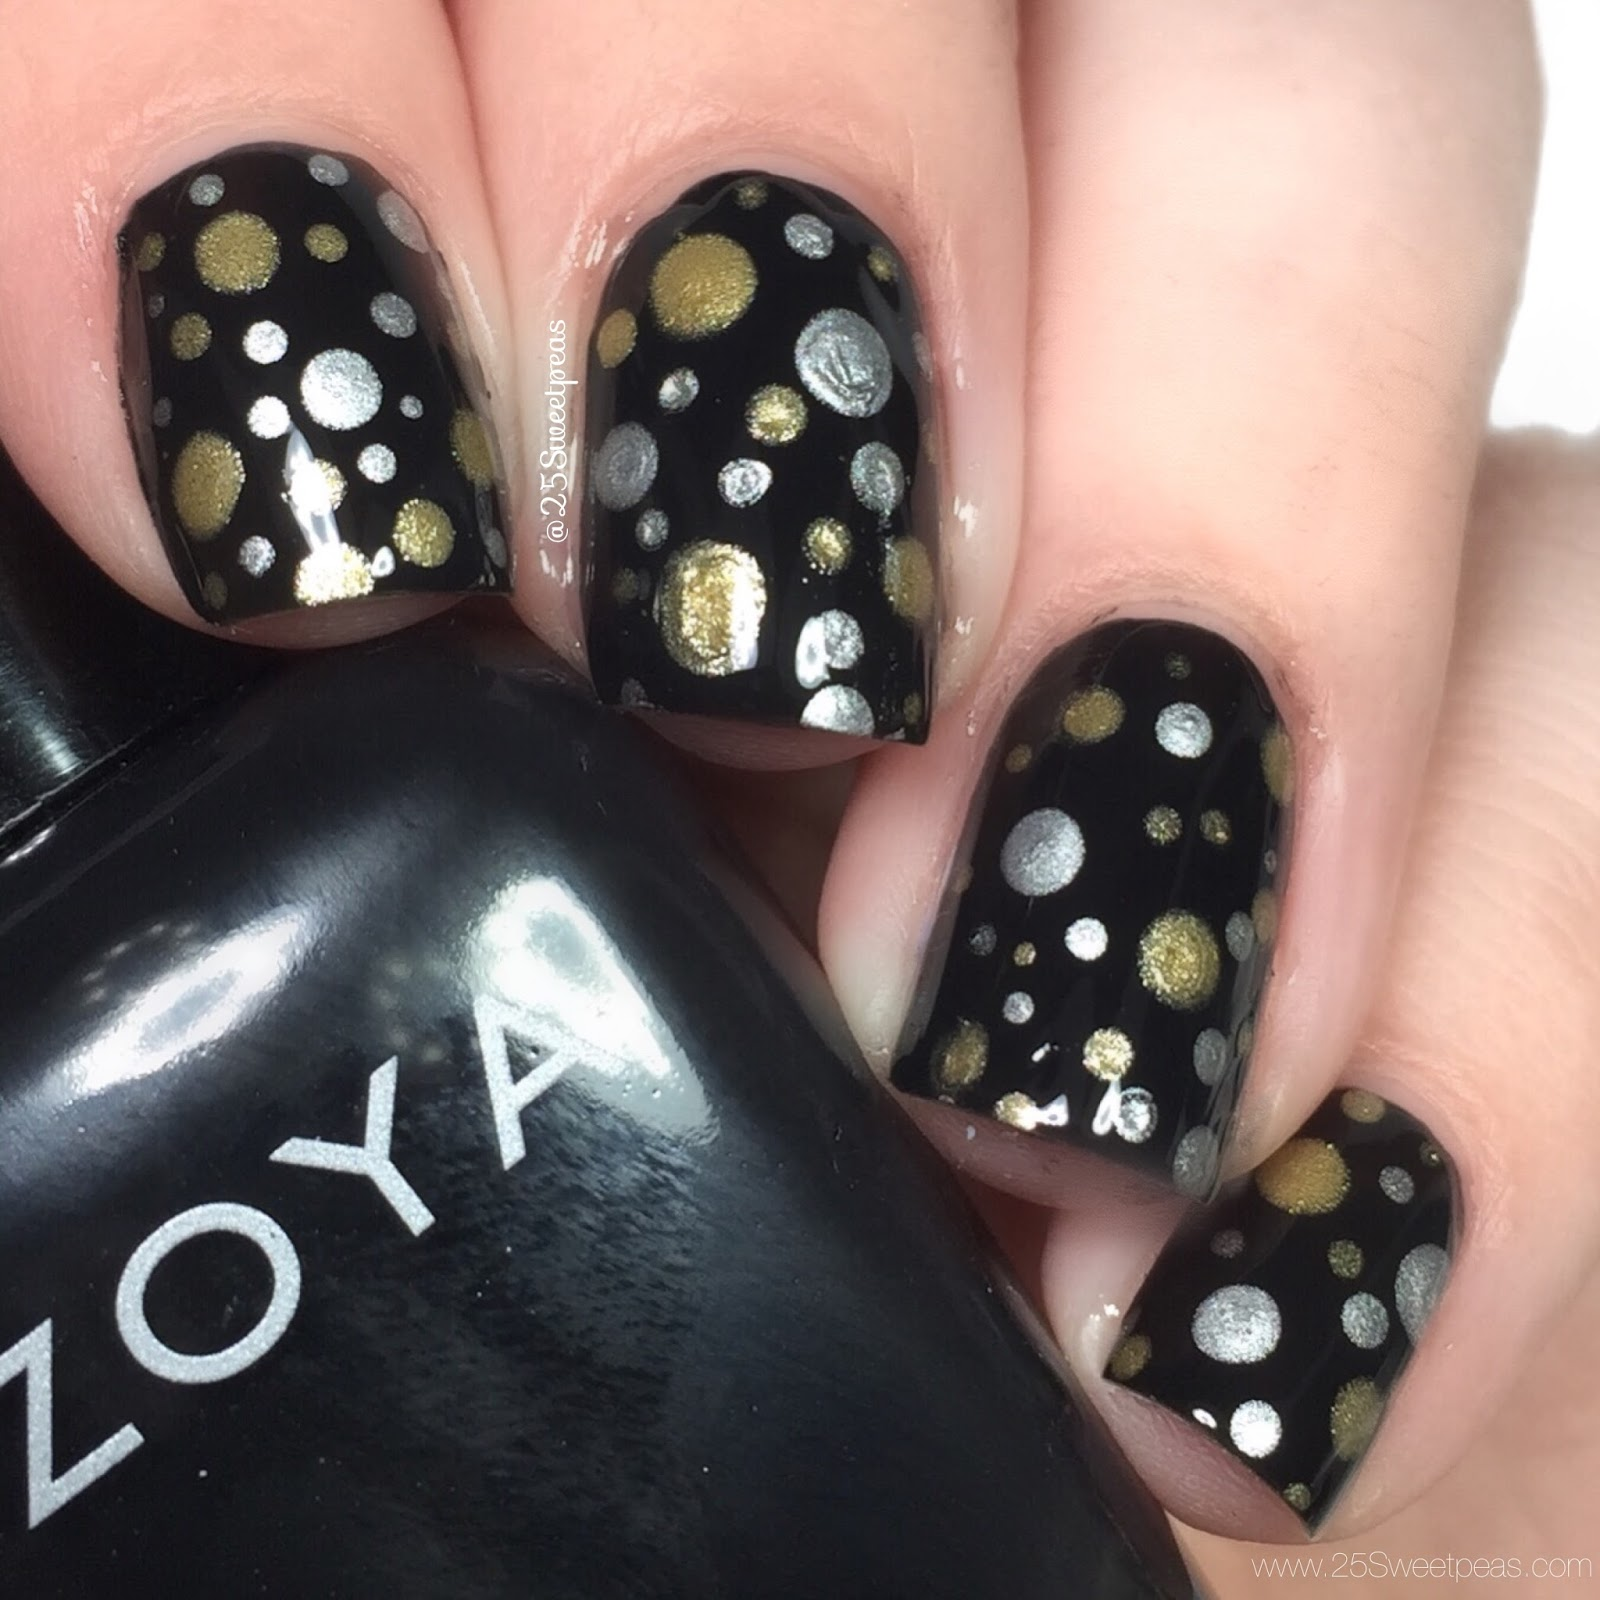 3 nye nail art looks using only dotting tools 25 sweetpeas nye nail art prinsesfo Images